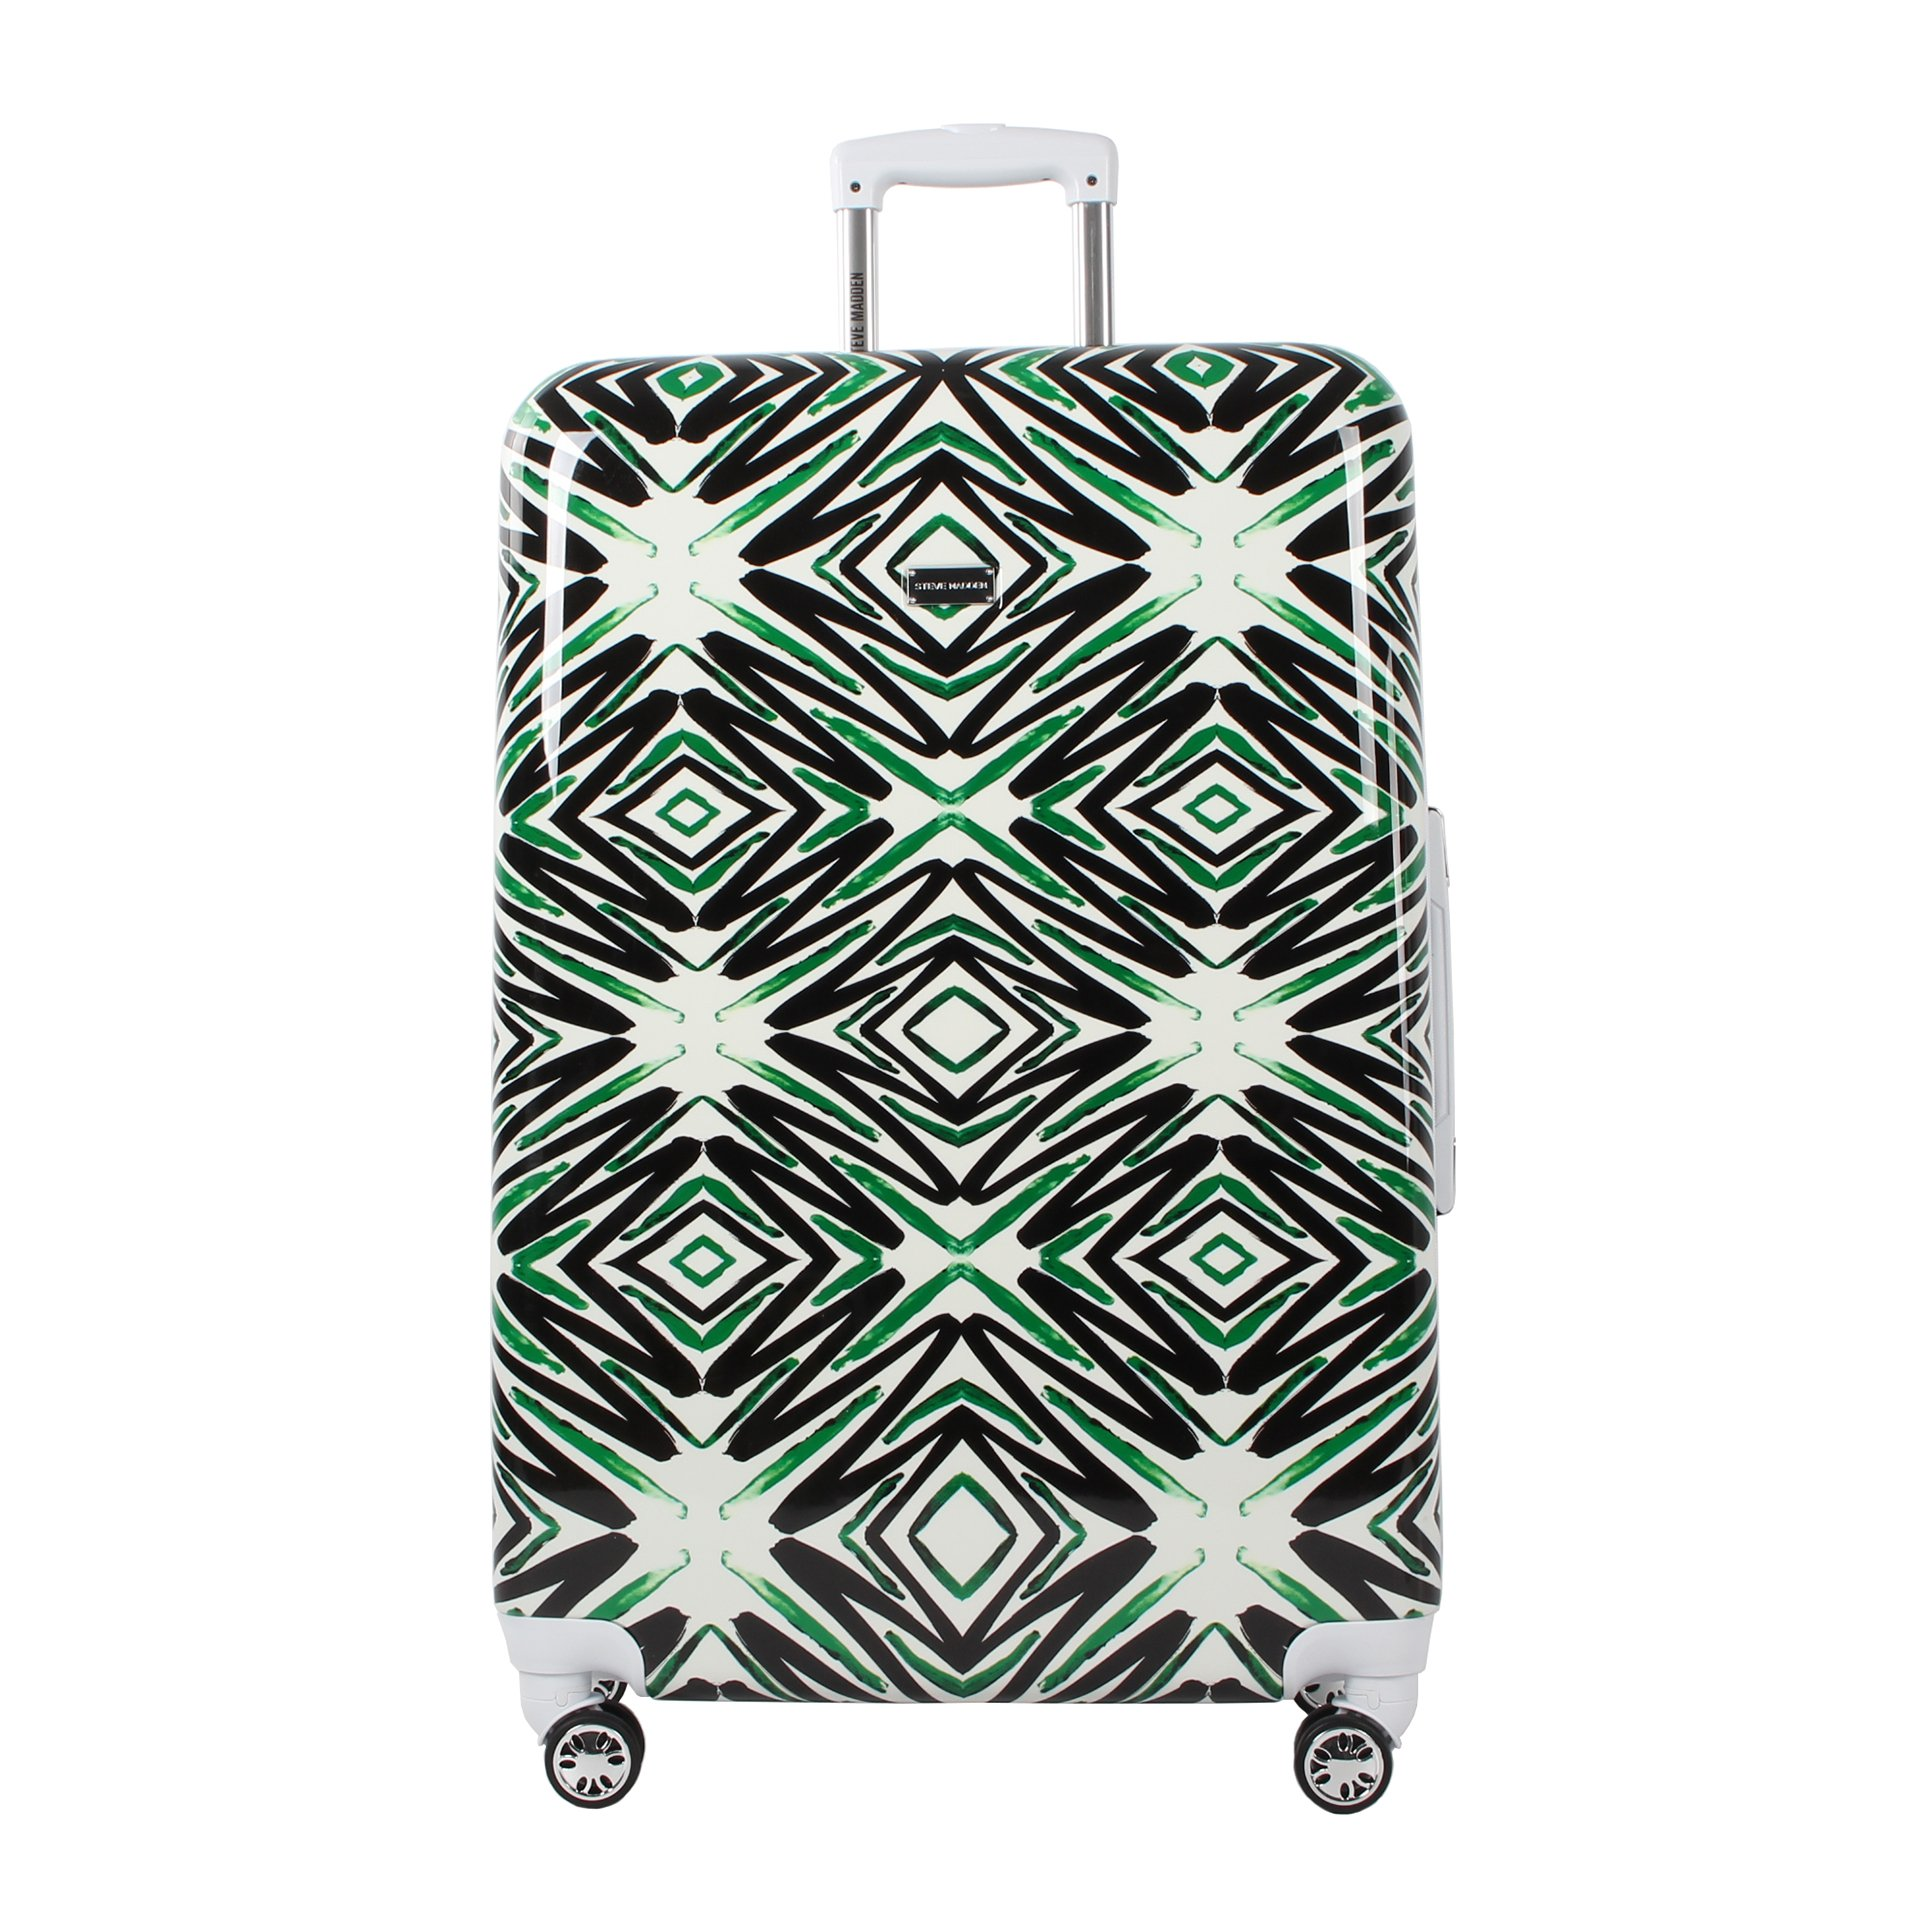 Steve Madden Large Hard Case Luggage With Spinner Wheels (Tribal)